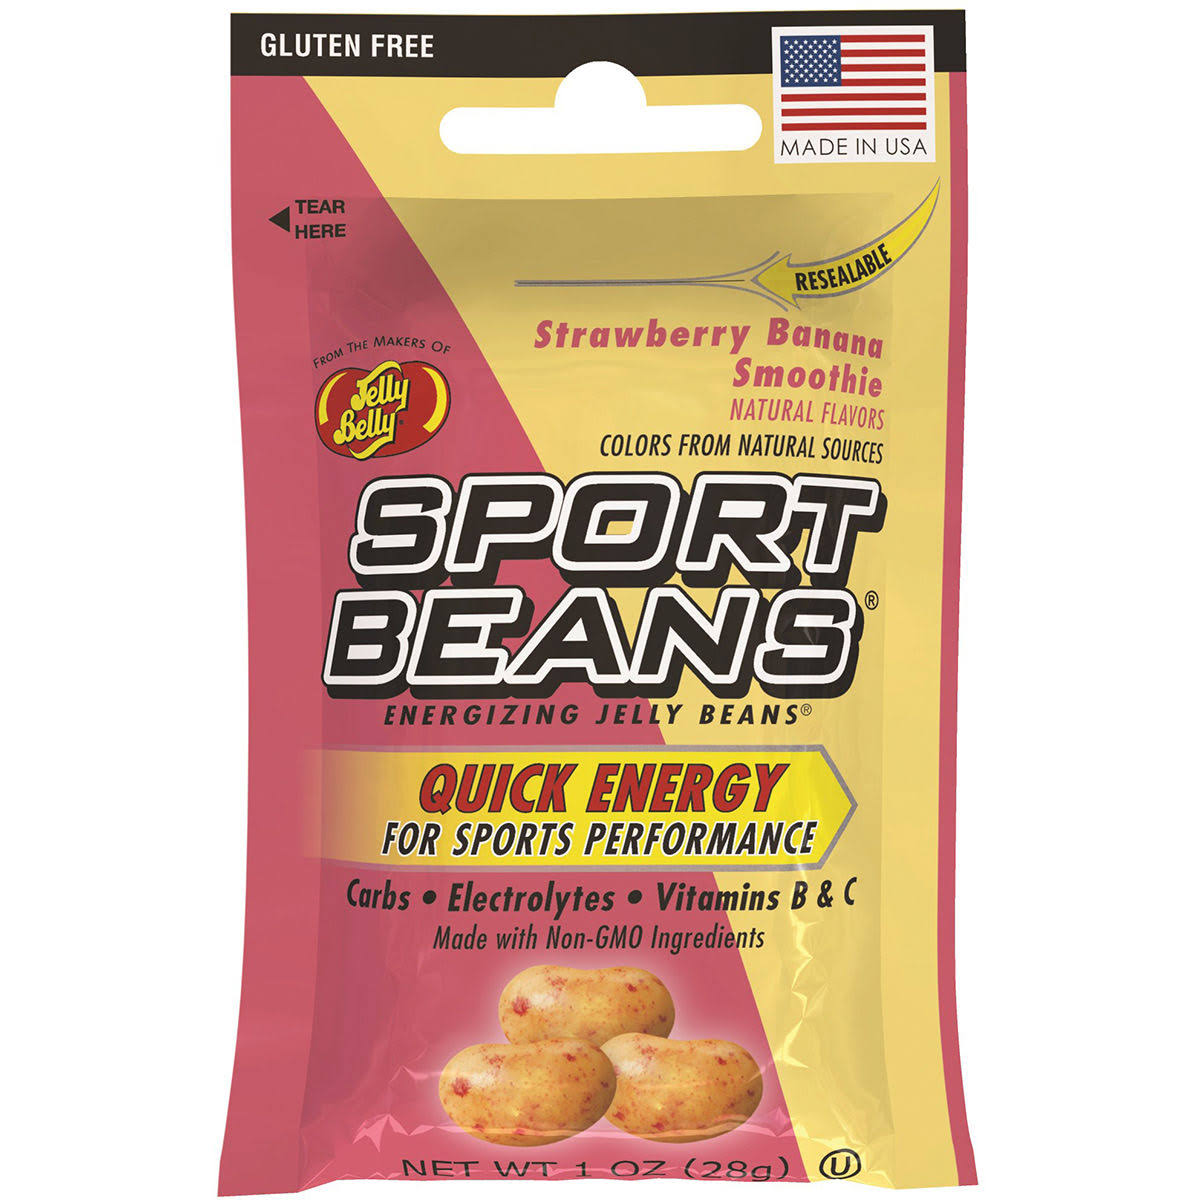 Jelly Belly Sports Beans - Strawberry Banana Smoothie, 1oz